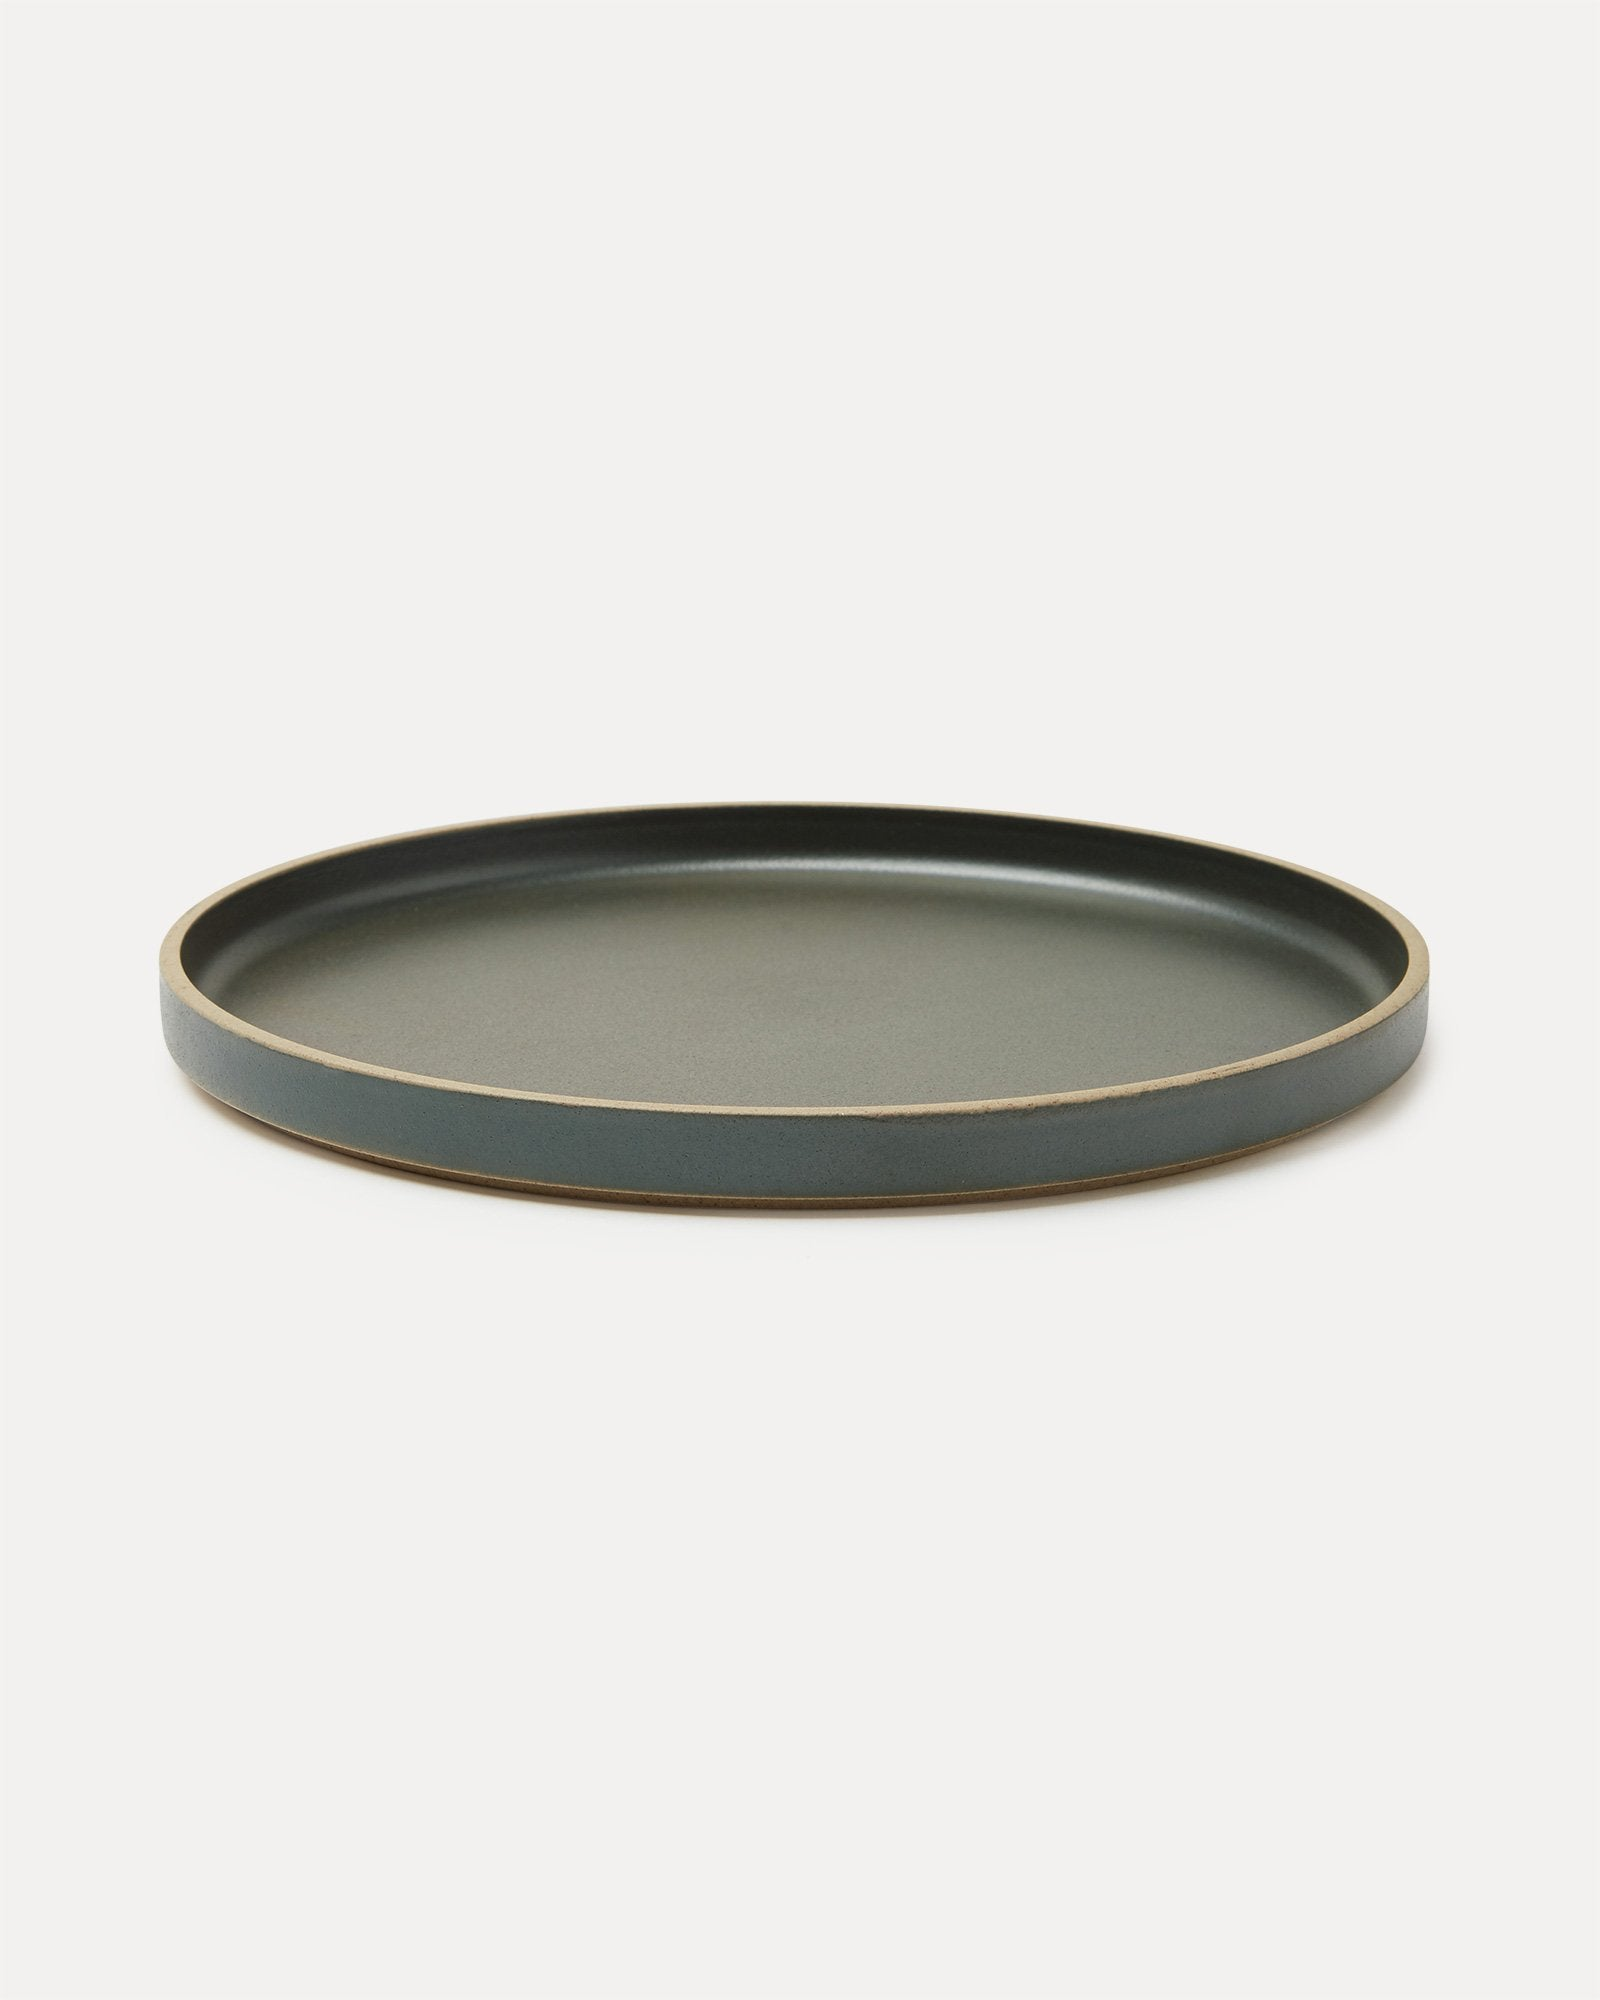 Hasami Porcelain Dinner Plate Black